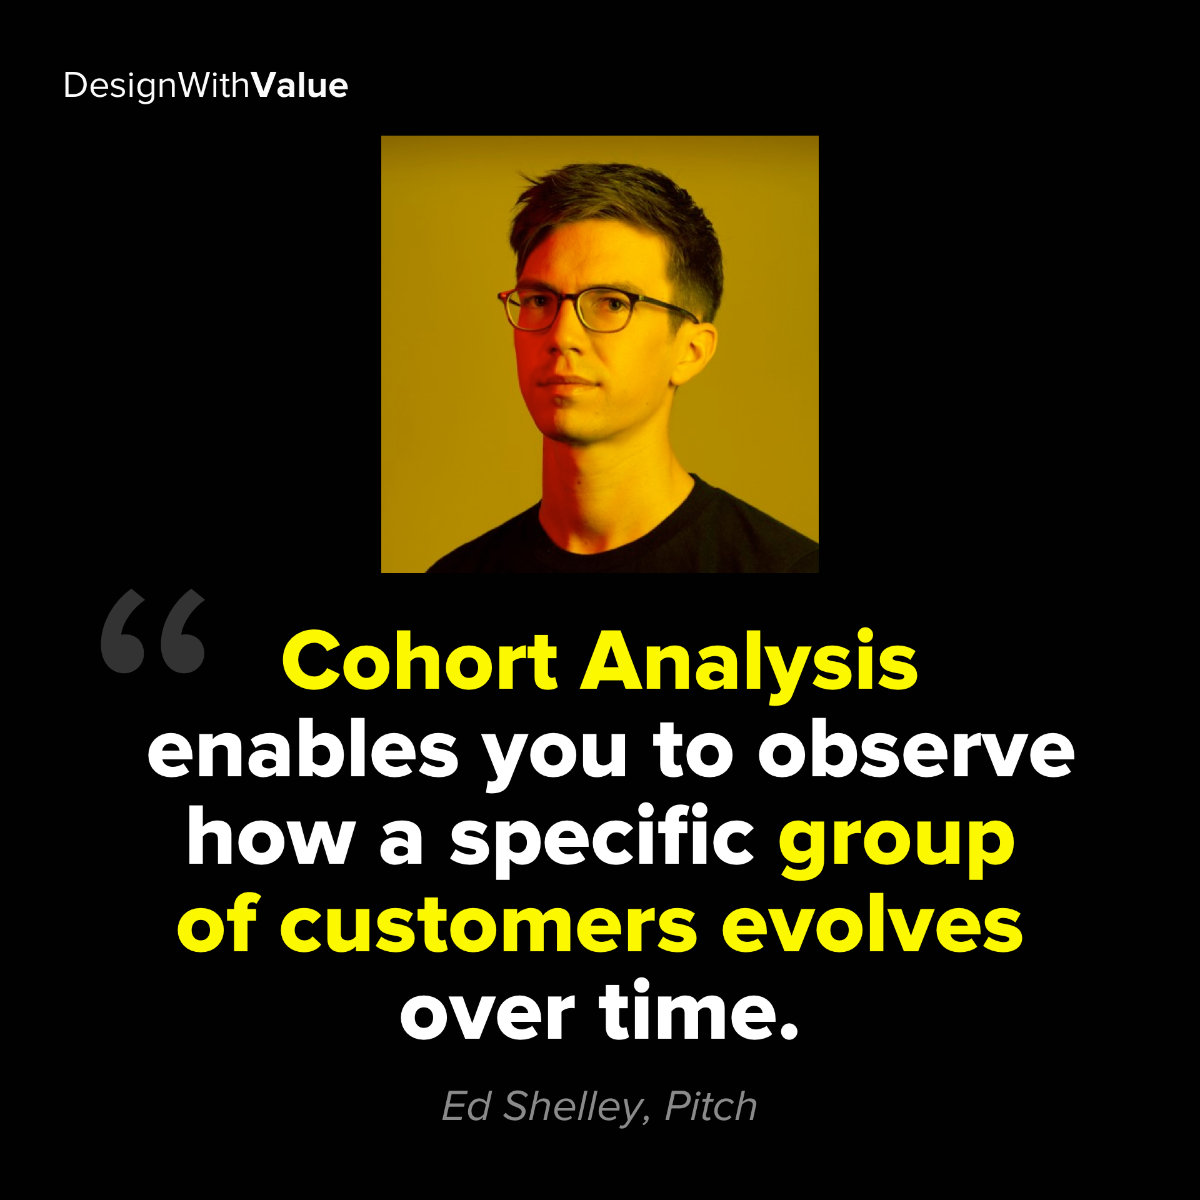 Cohort analysis enables you to observe how a specific group of customers evolves over time